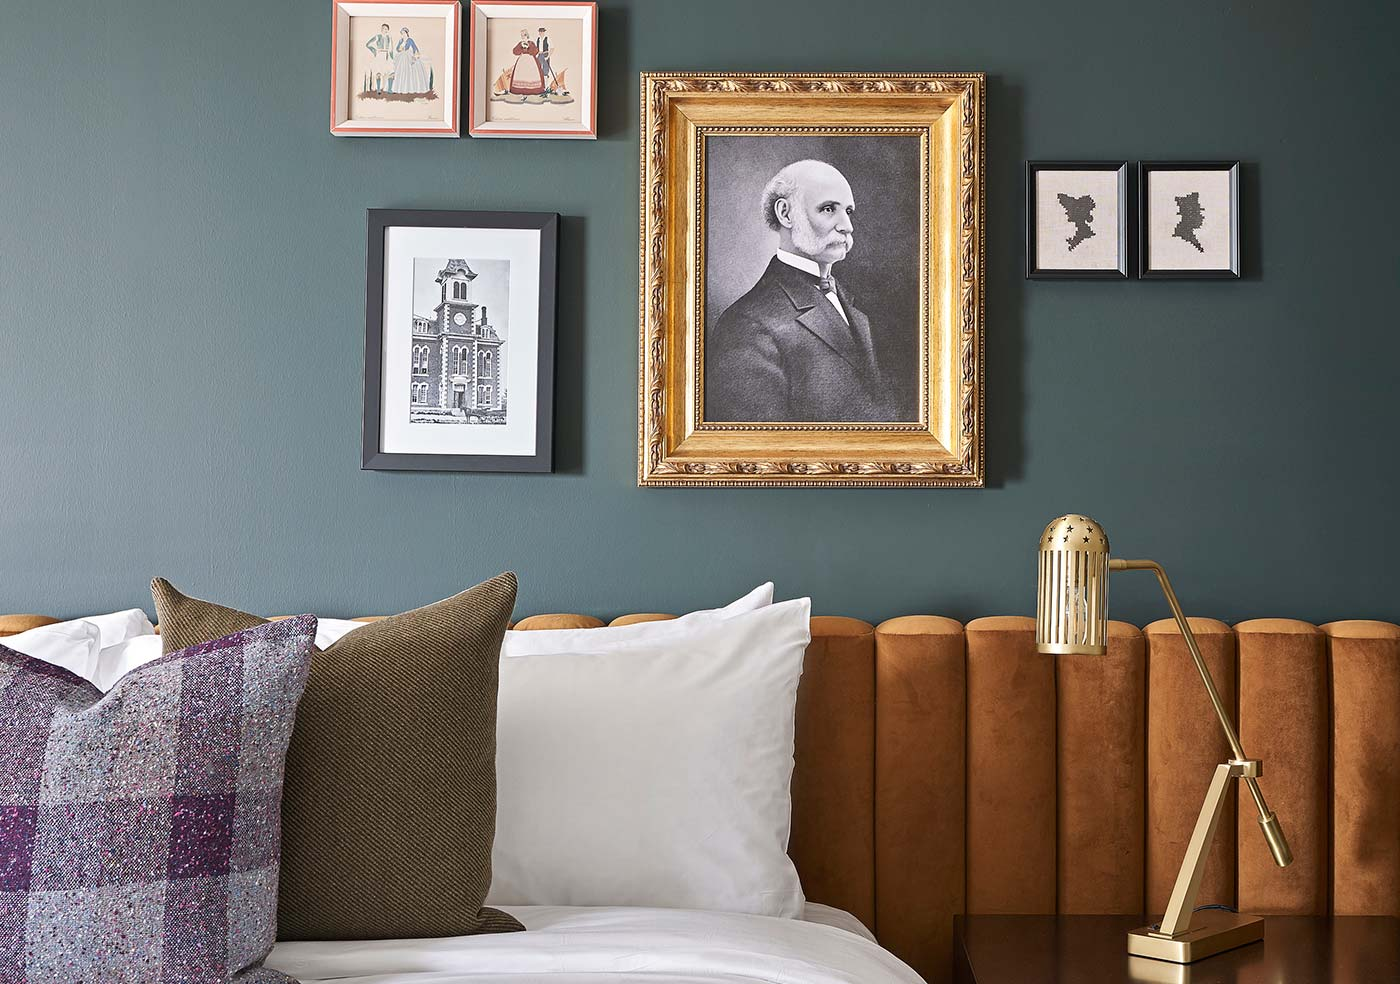 close up of hotel guest room bed with decorative pillows and artwork on wall